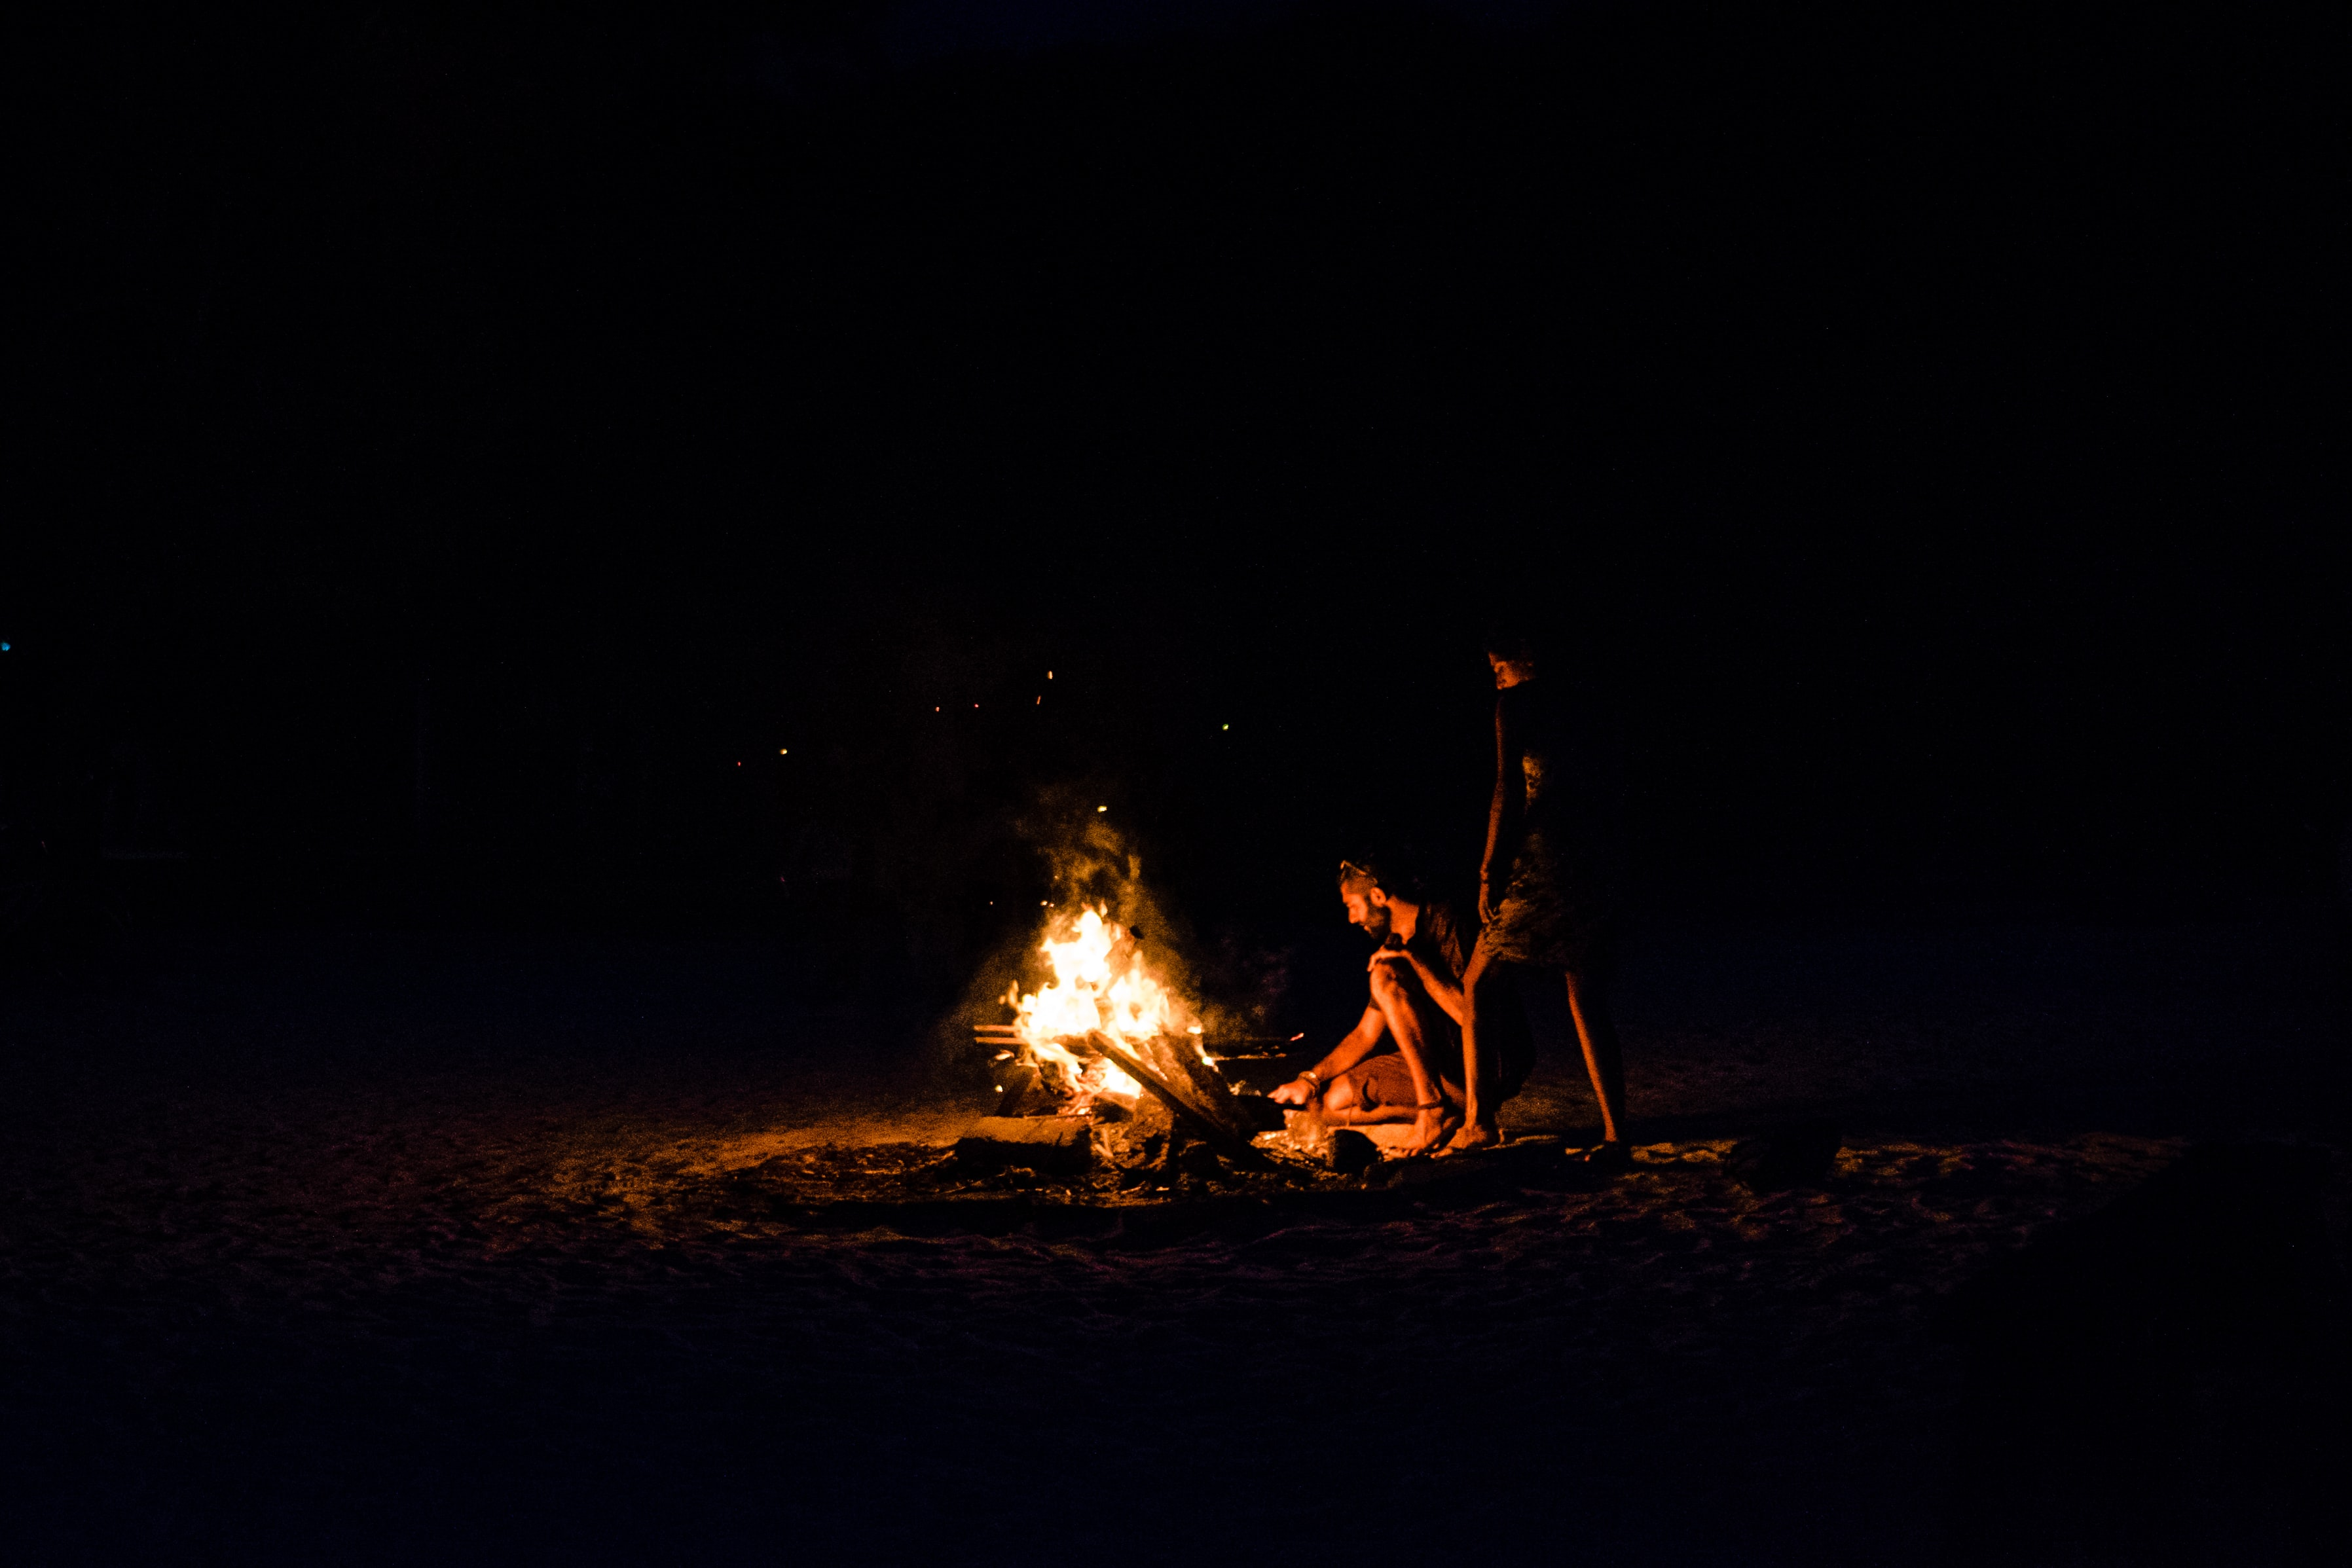 three person sitting near bornfire